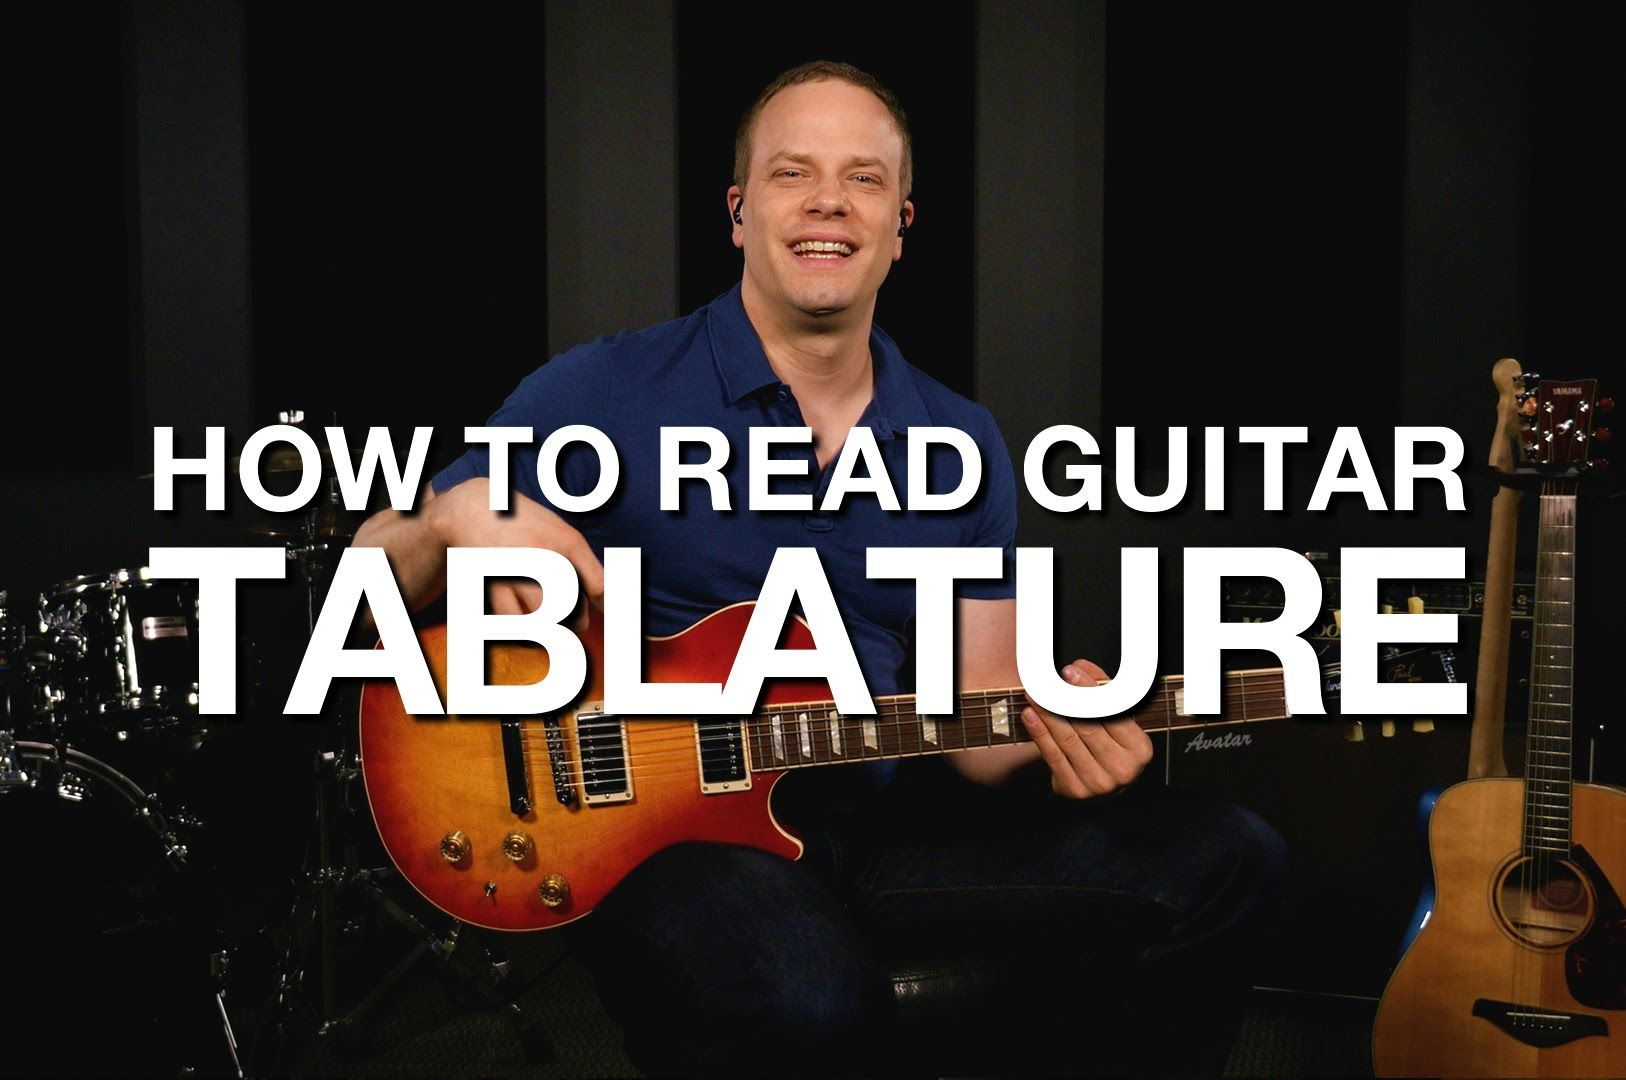 How to read guitar tabs learn guitar guitar lessons guitar